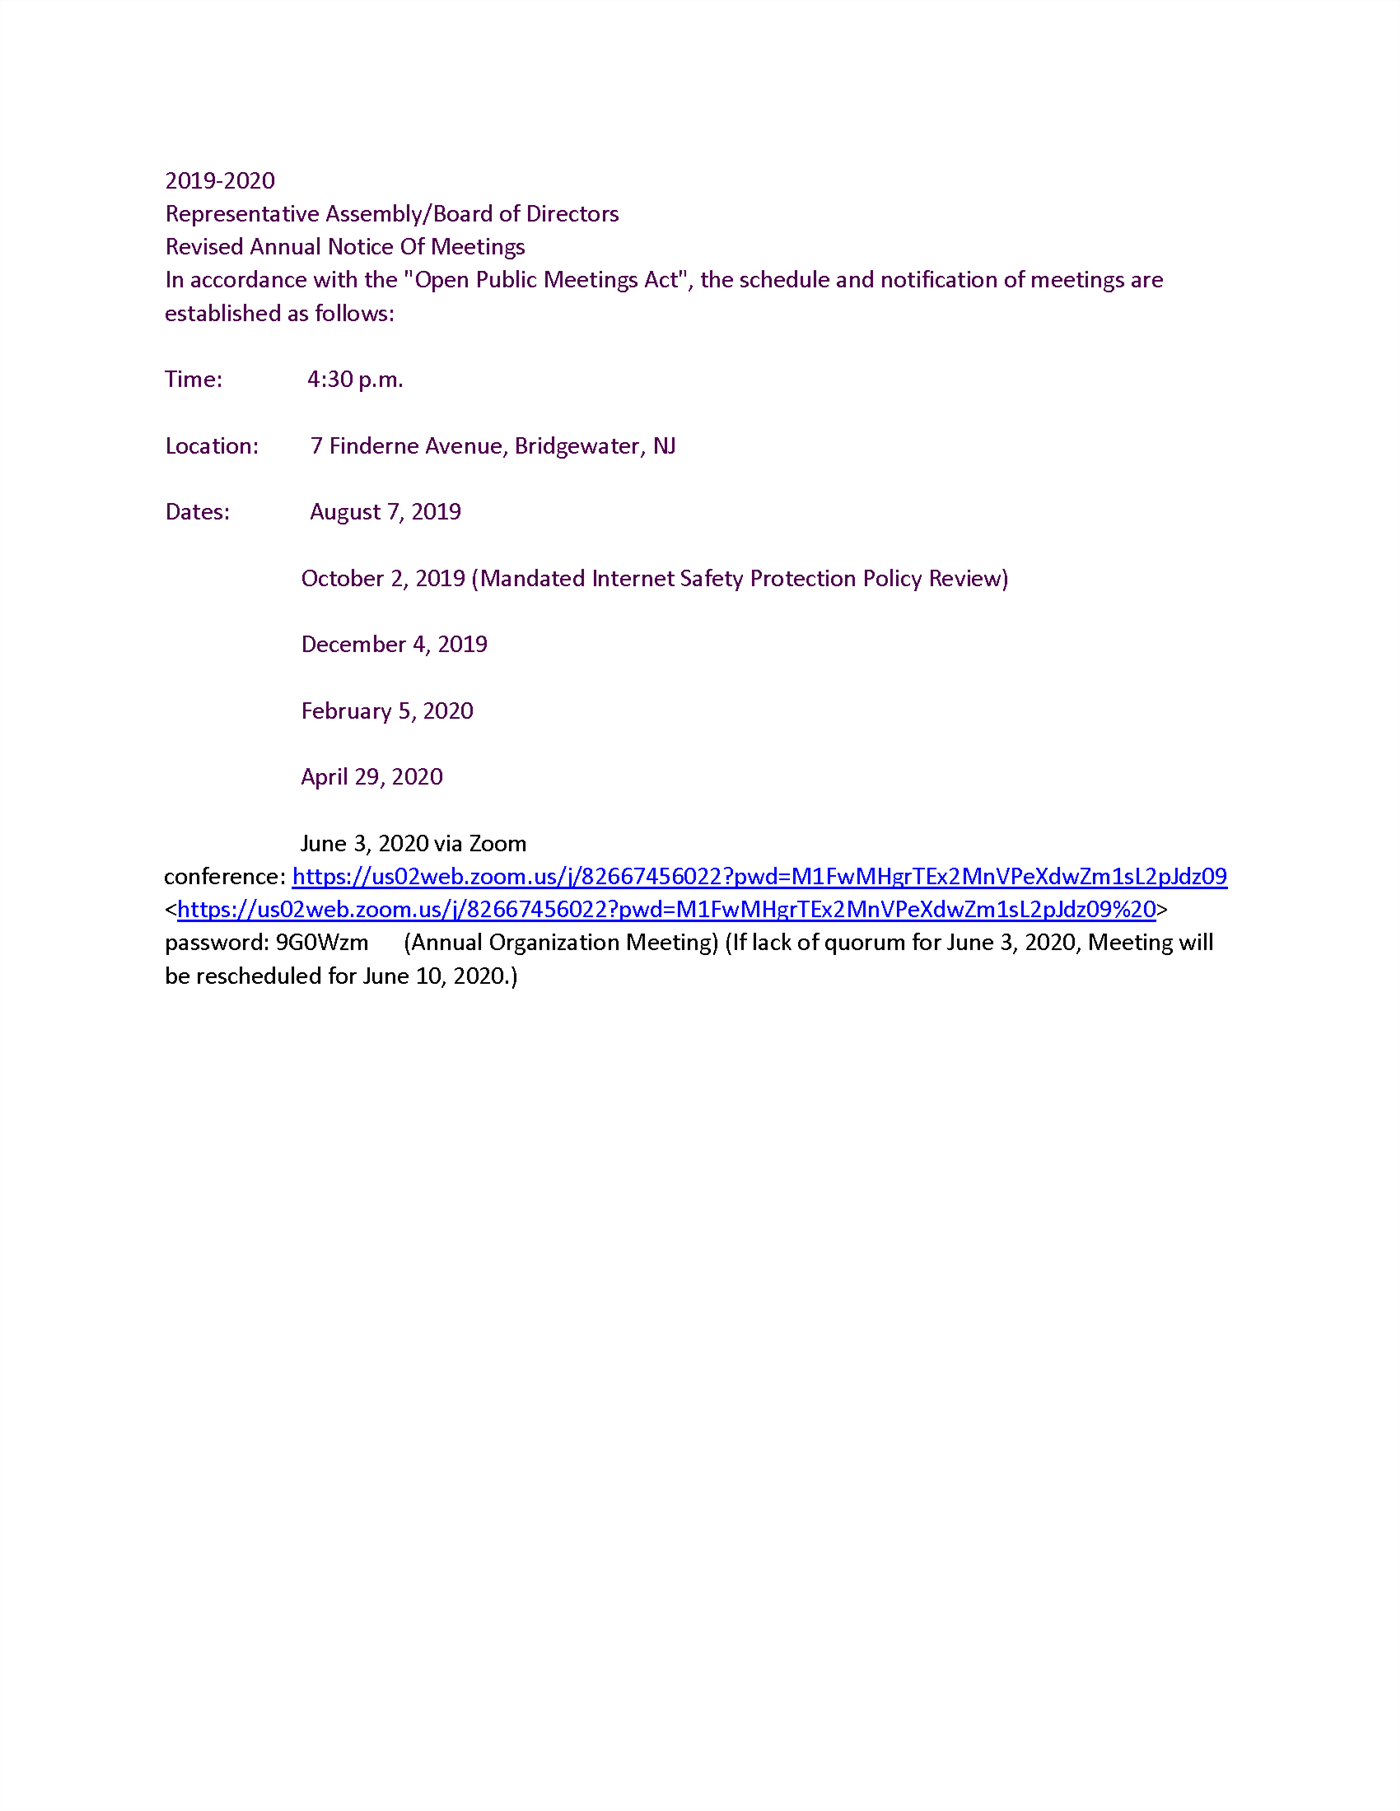 Revised Annual Notice of Meetings - June 2020